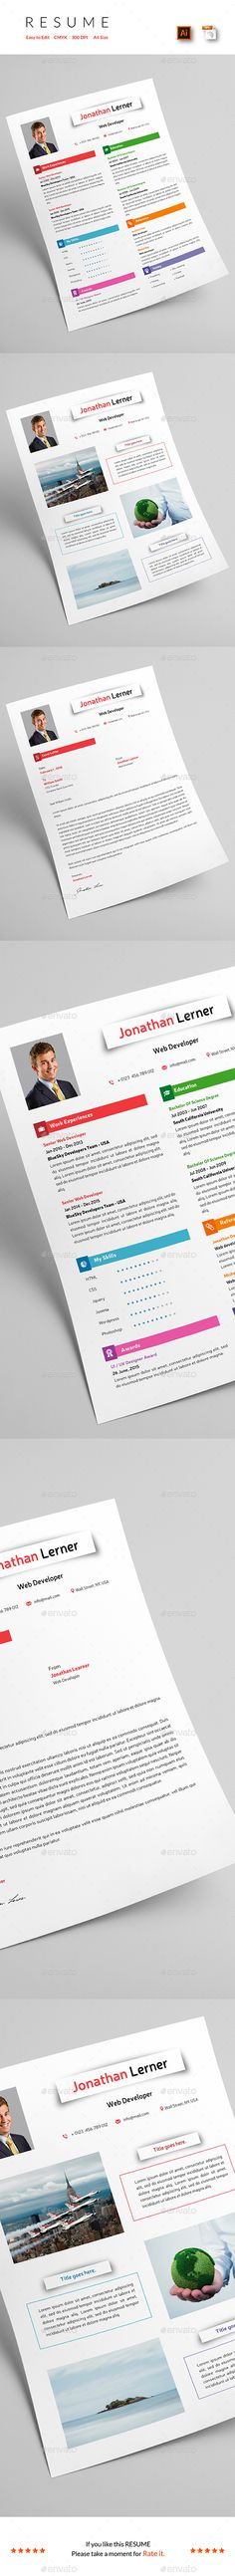 Resume + Portfolio Template Vector EPS & AI. Download here…